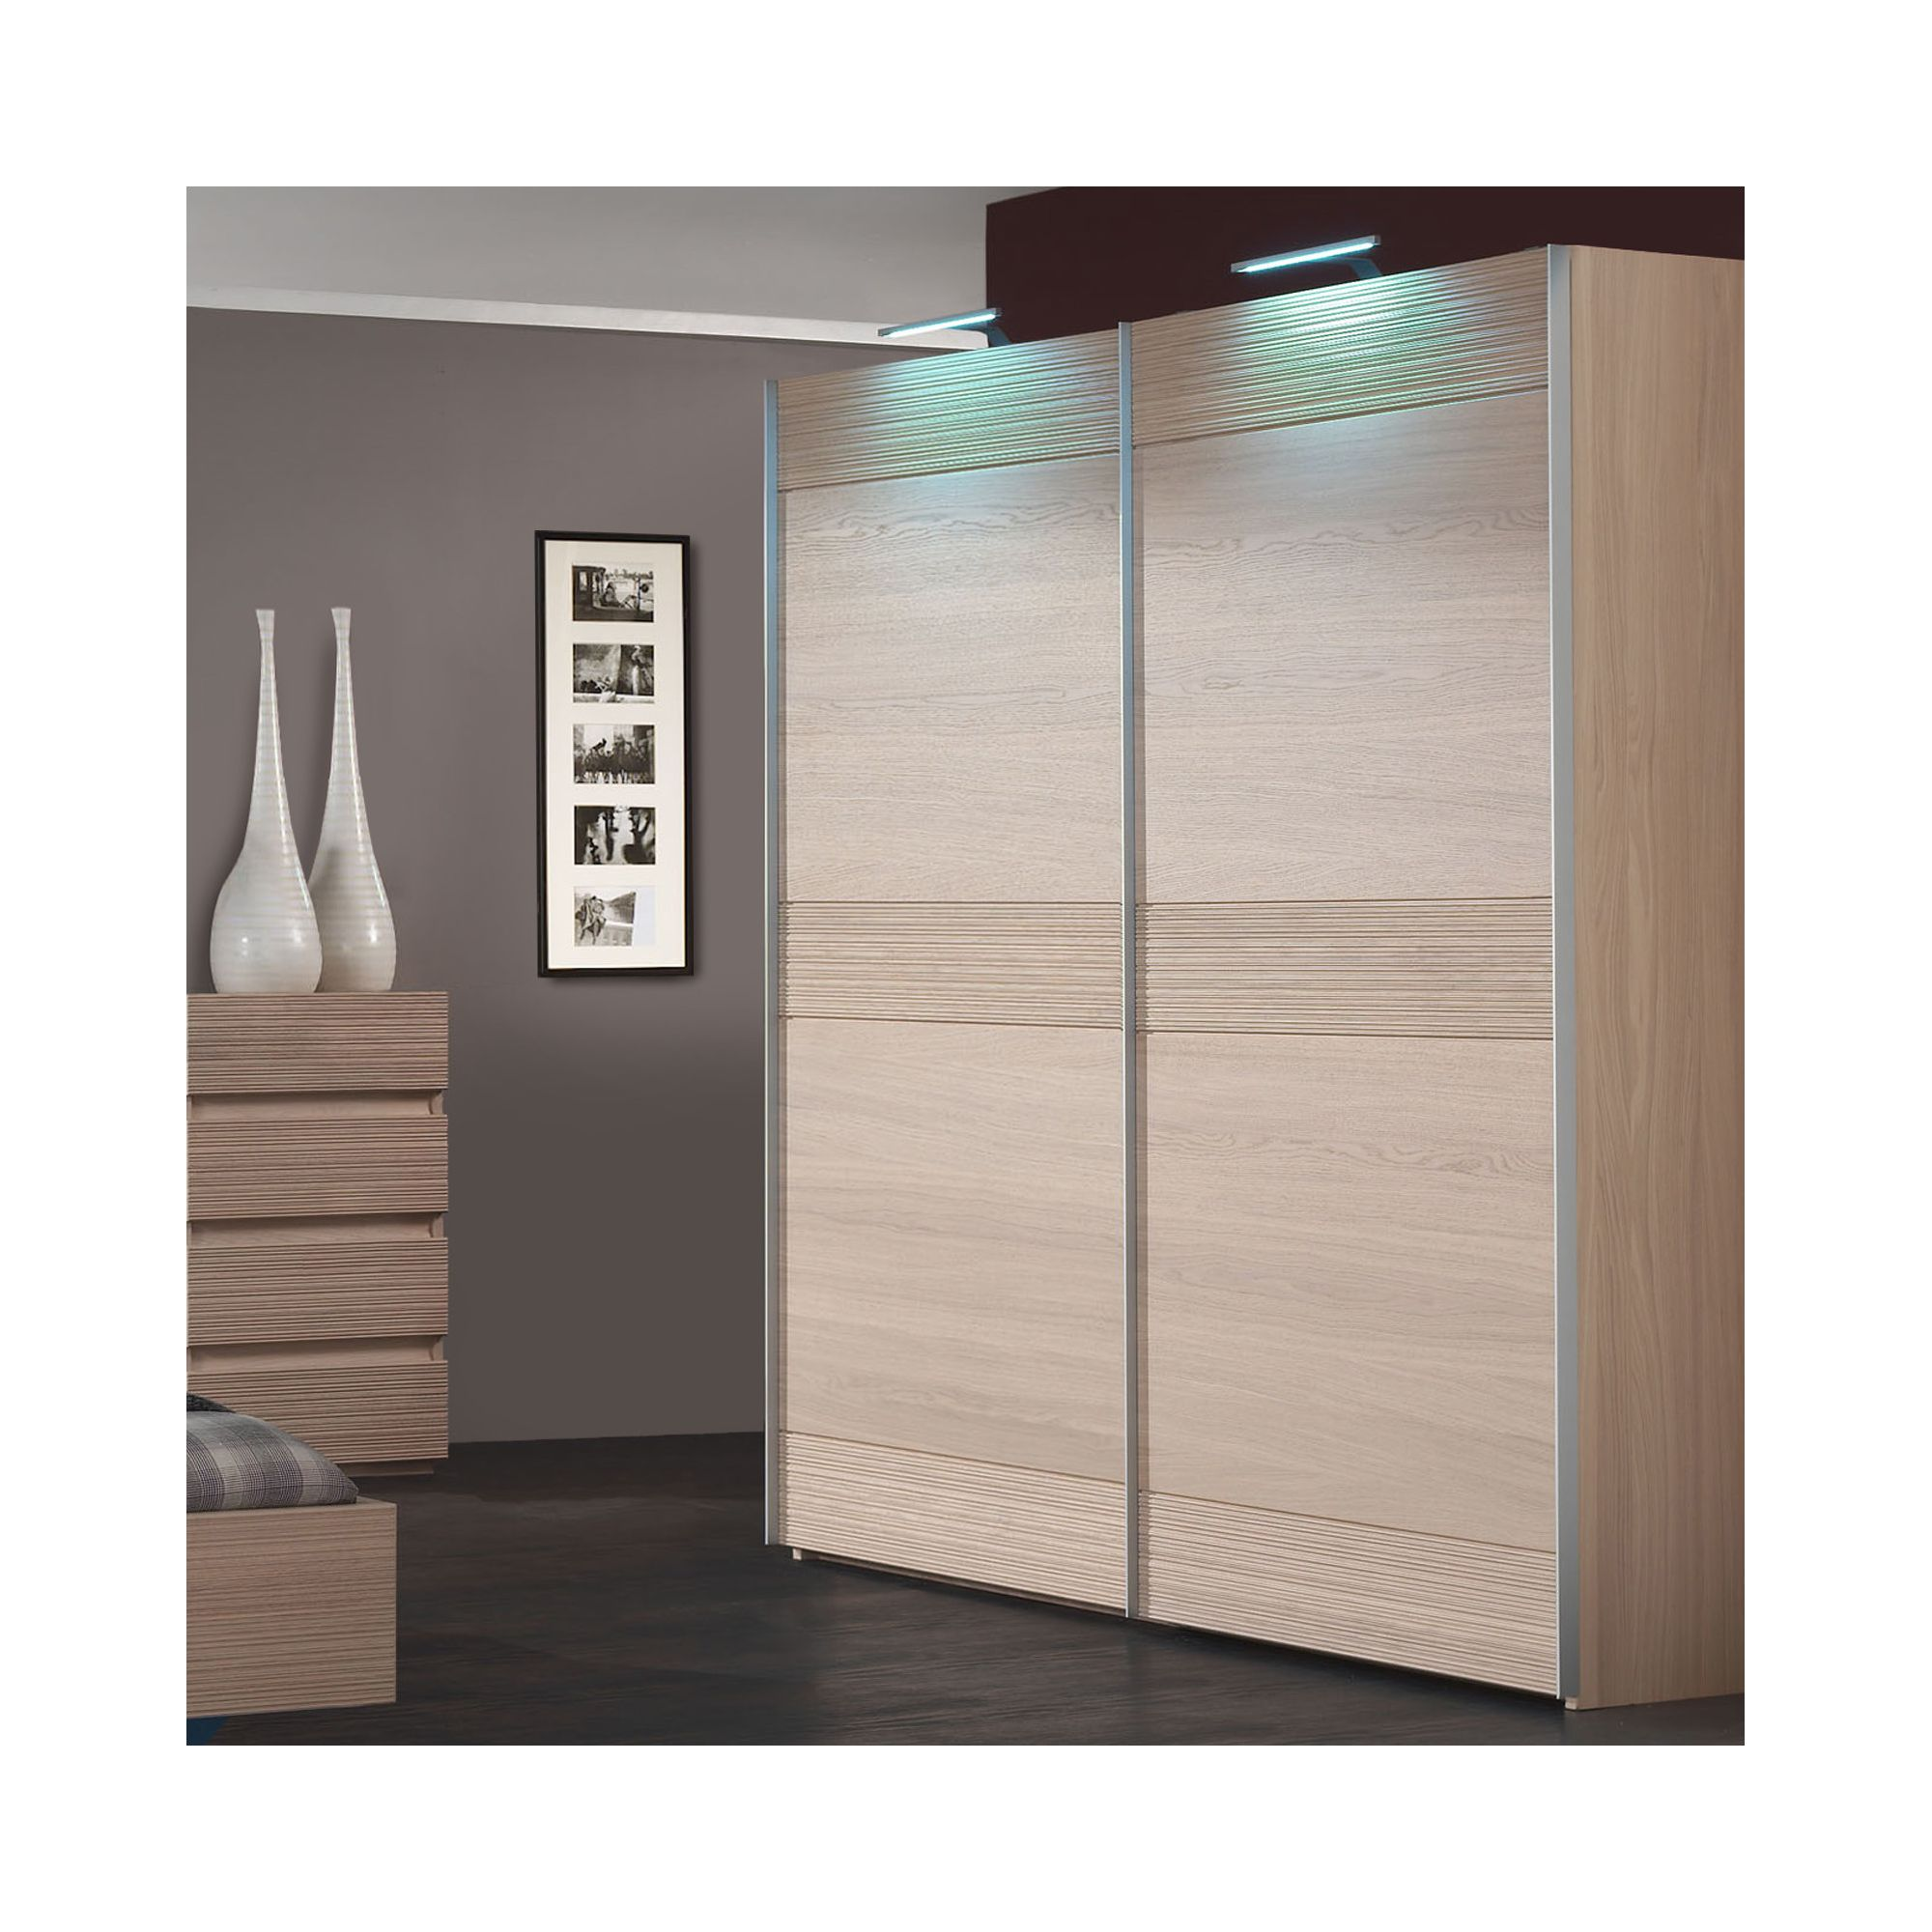 Sleepline Diva Wardrobe with 4 Shelves - Grey Mat Lacquered - Without Mirror - 265cm at Tesco Direct